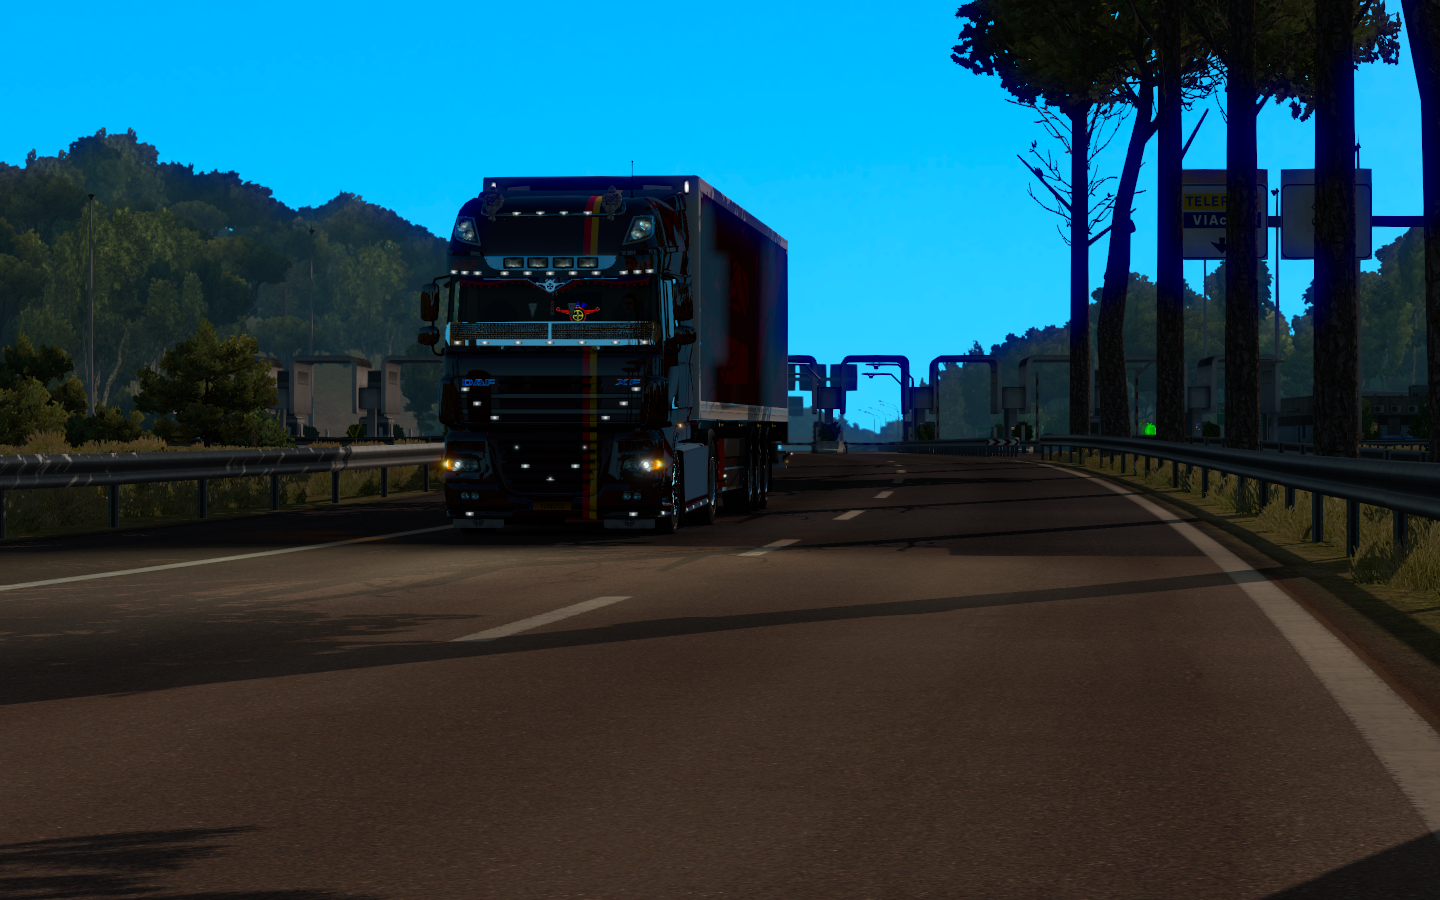 ets2_20190420_171415_00.png